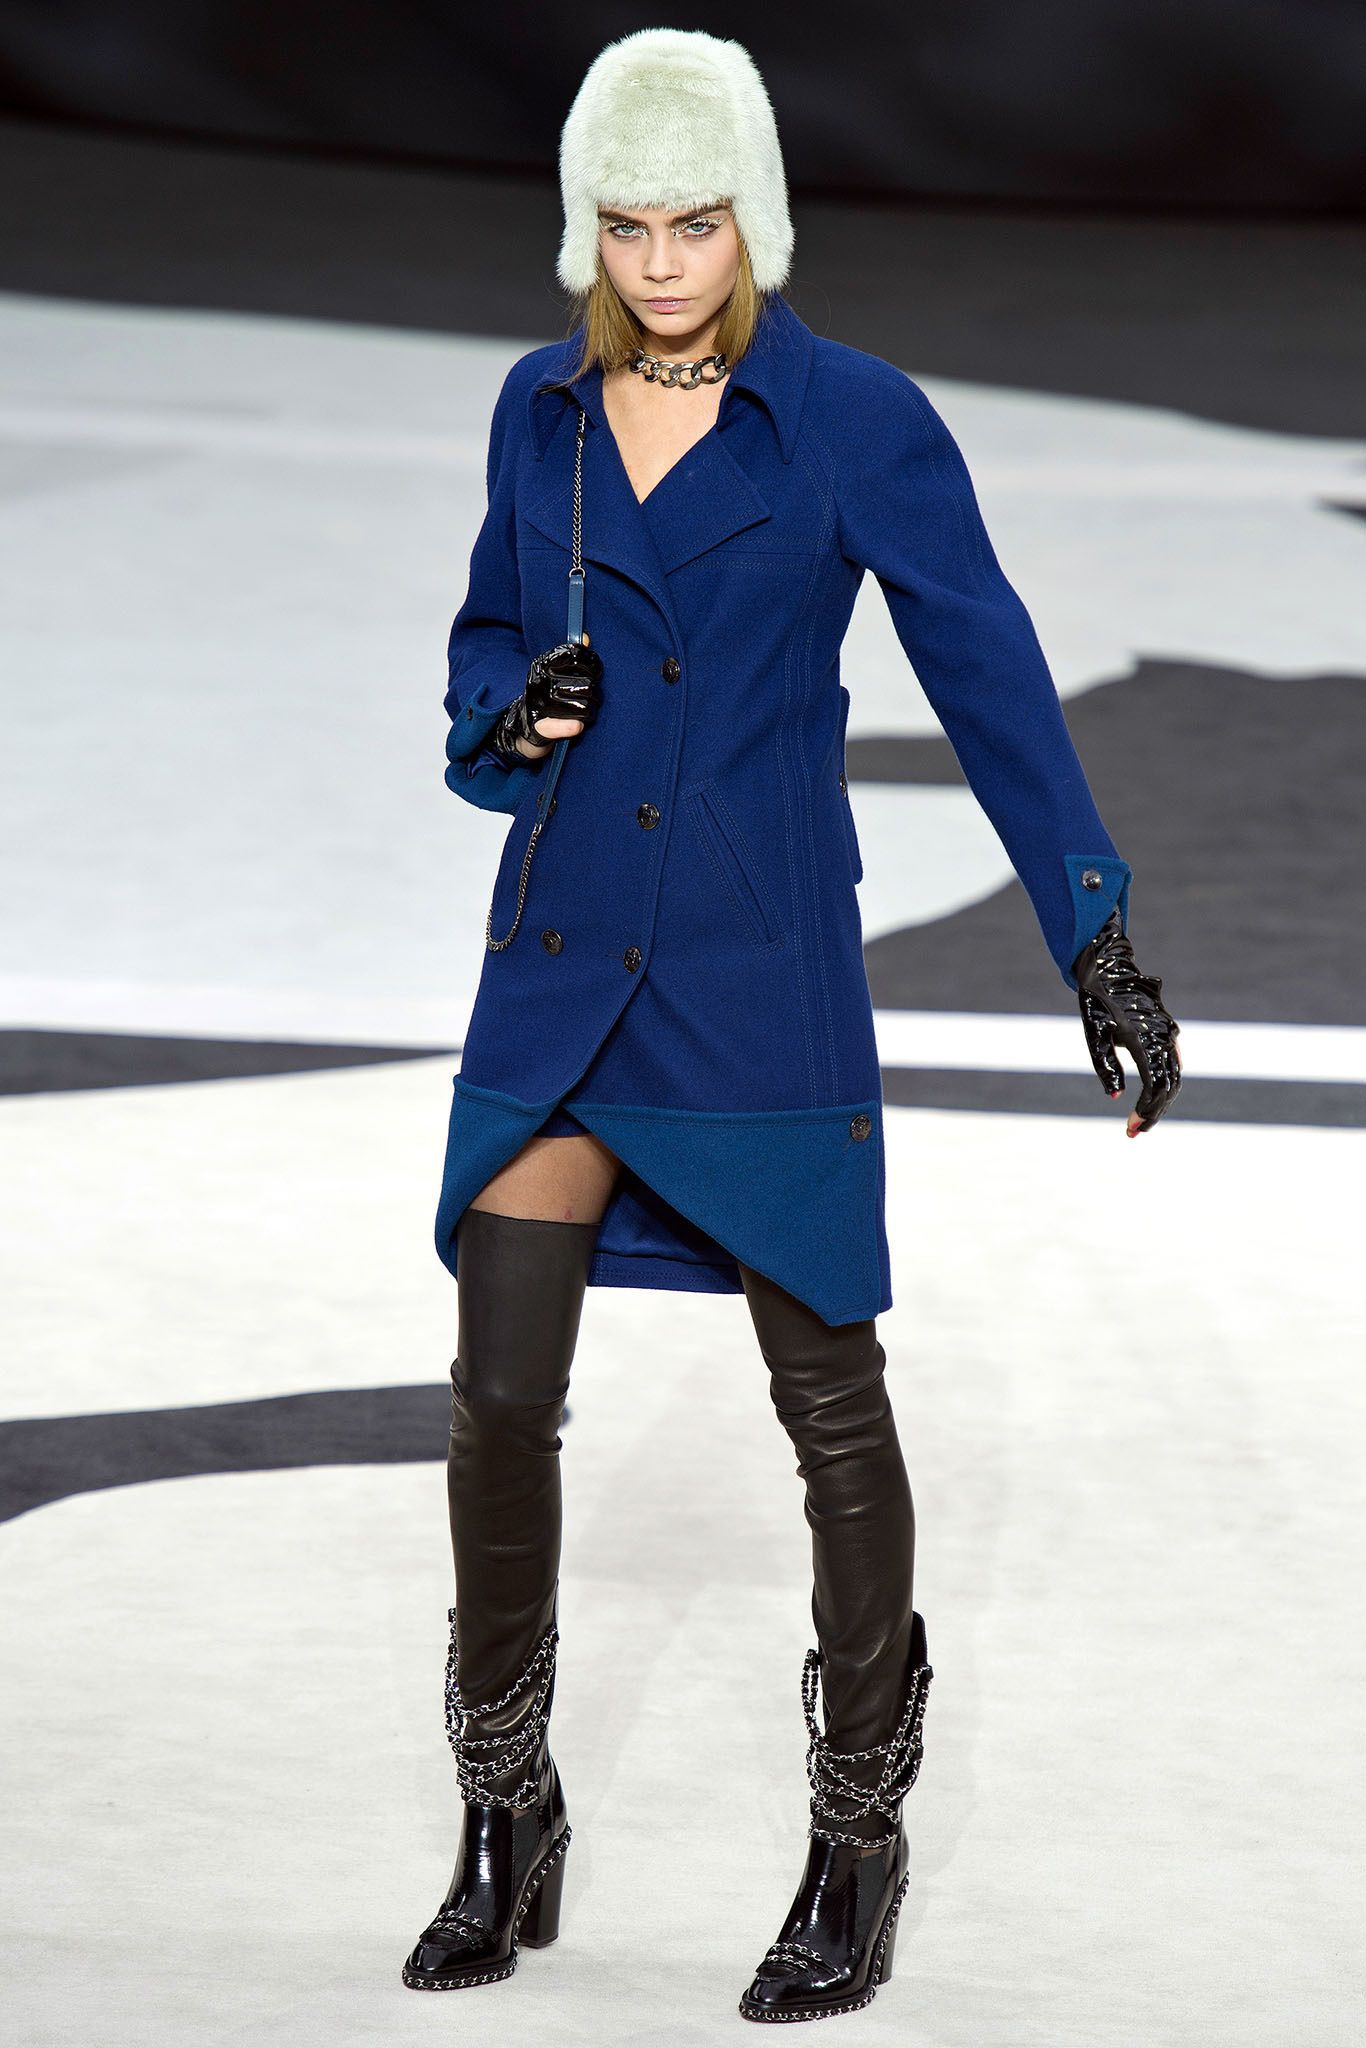 Chanel Fall 2013 Ready-to-Wear Fashion Show - Cara Delevingne (Elite)